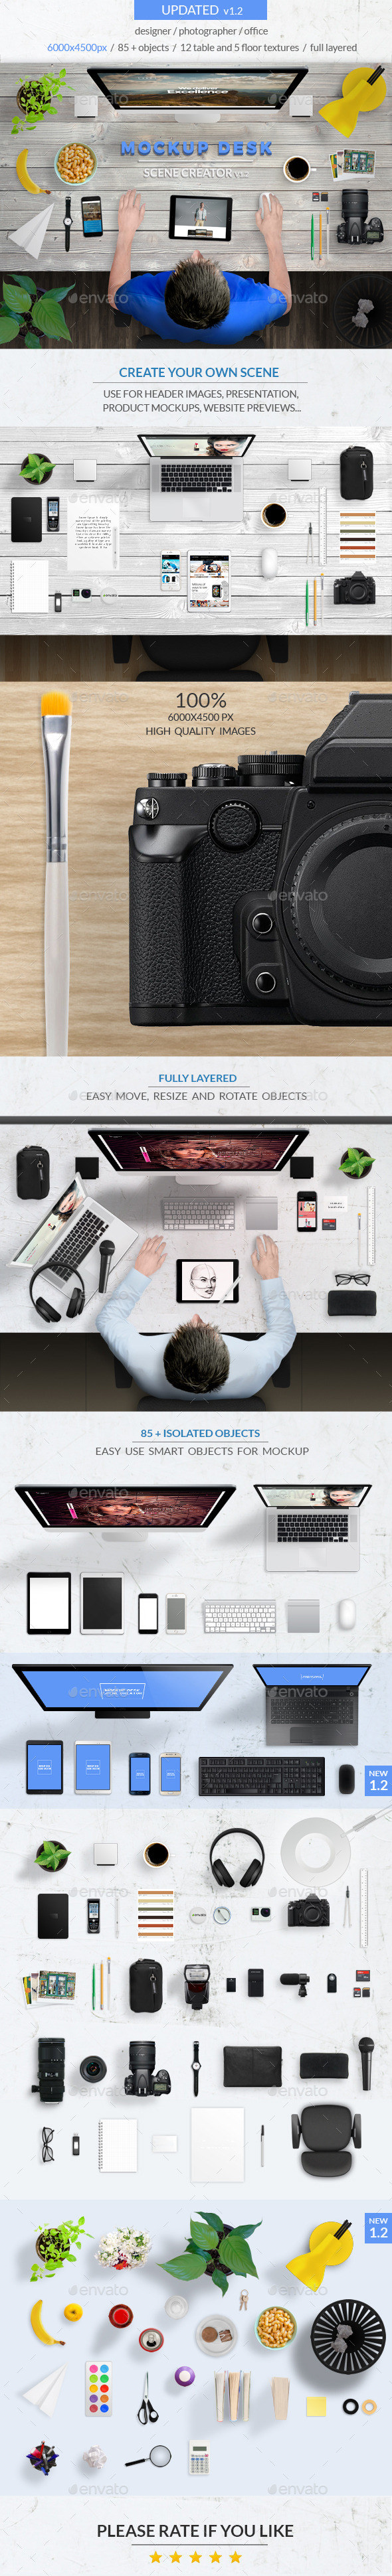 Mockup Desk Scene Creator - Hero Images Graphics